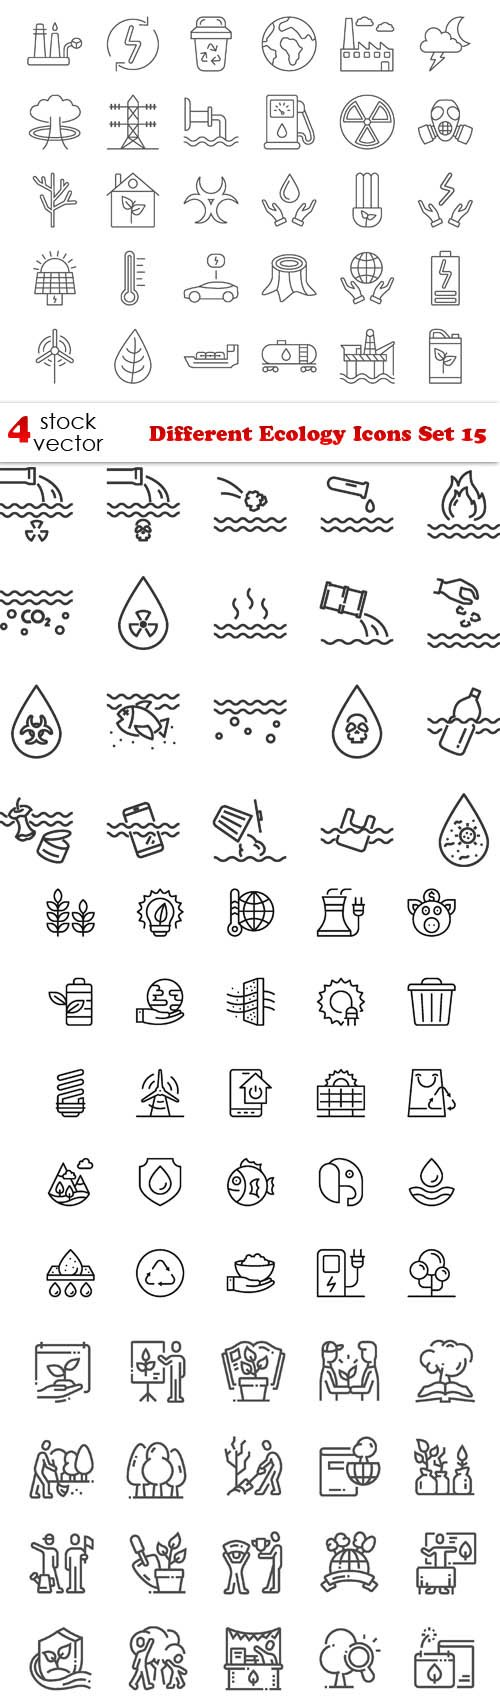 Vectors - Different Ecology Icons Set 15